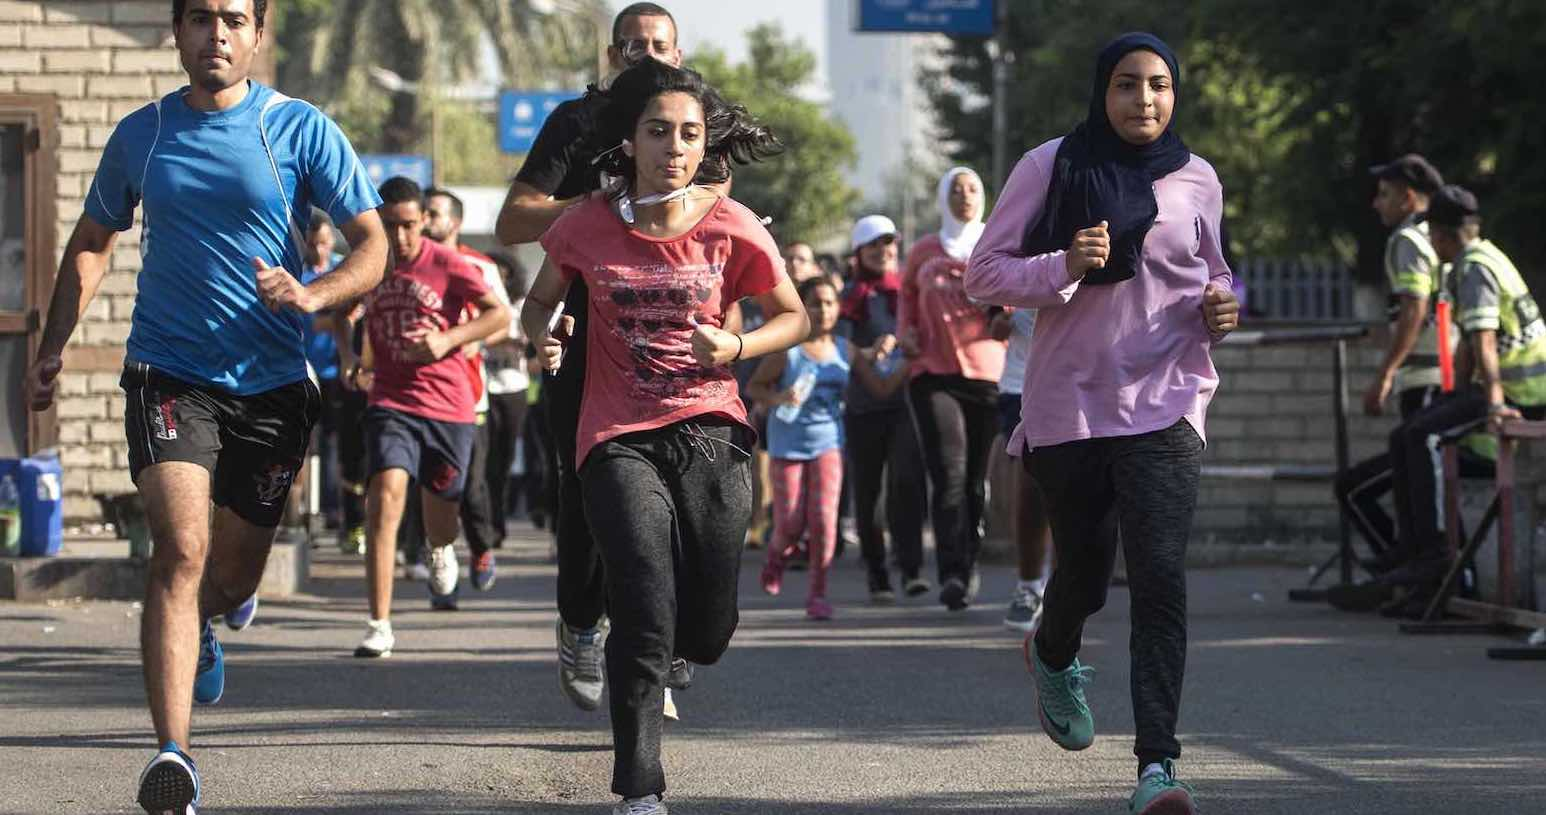 Cairo marathon competitors variously ran with the traffic, against the traffic, and occasionally needed to cross the traffic (Photo: Khaled Desouki via Getty)